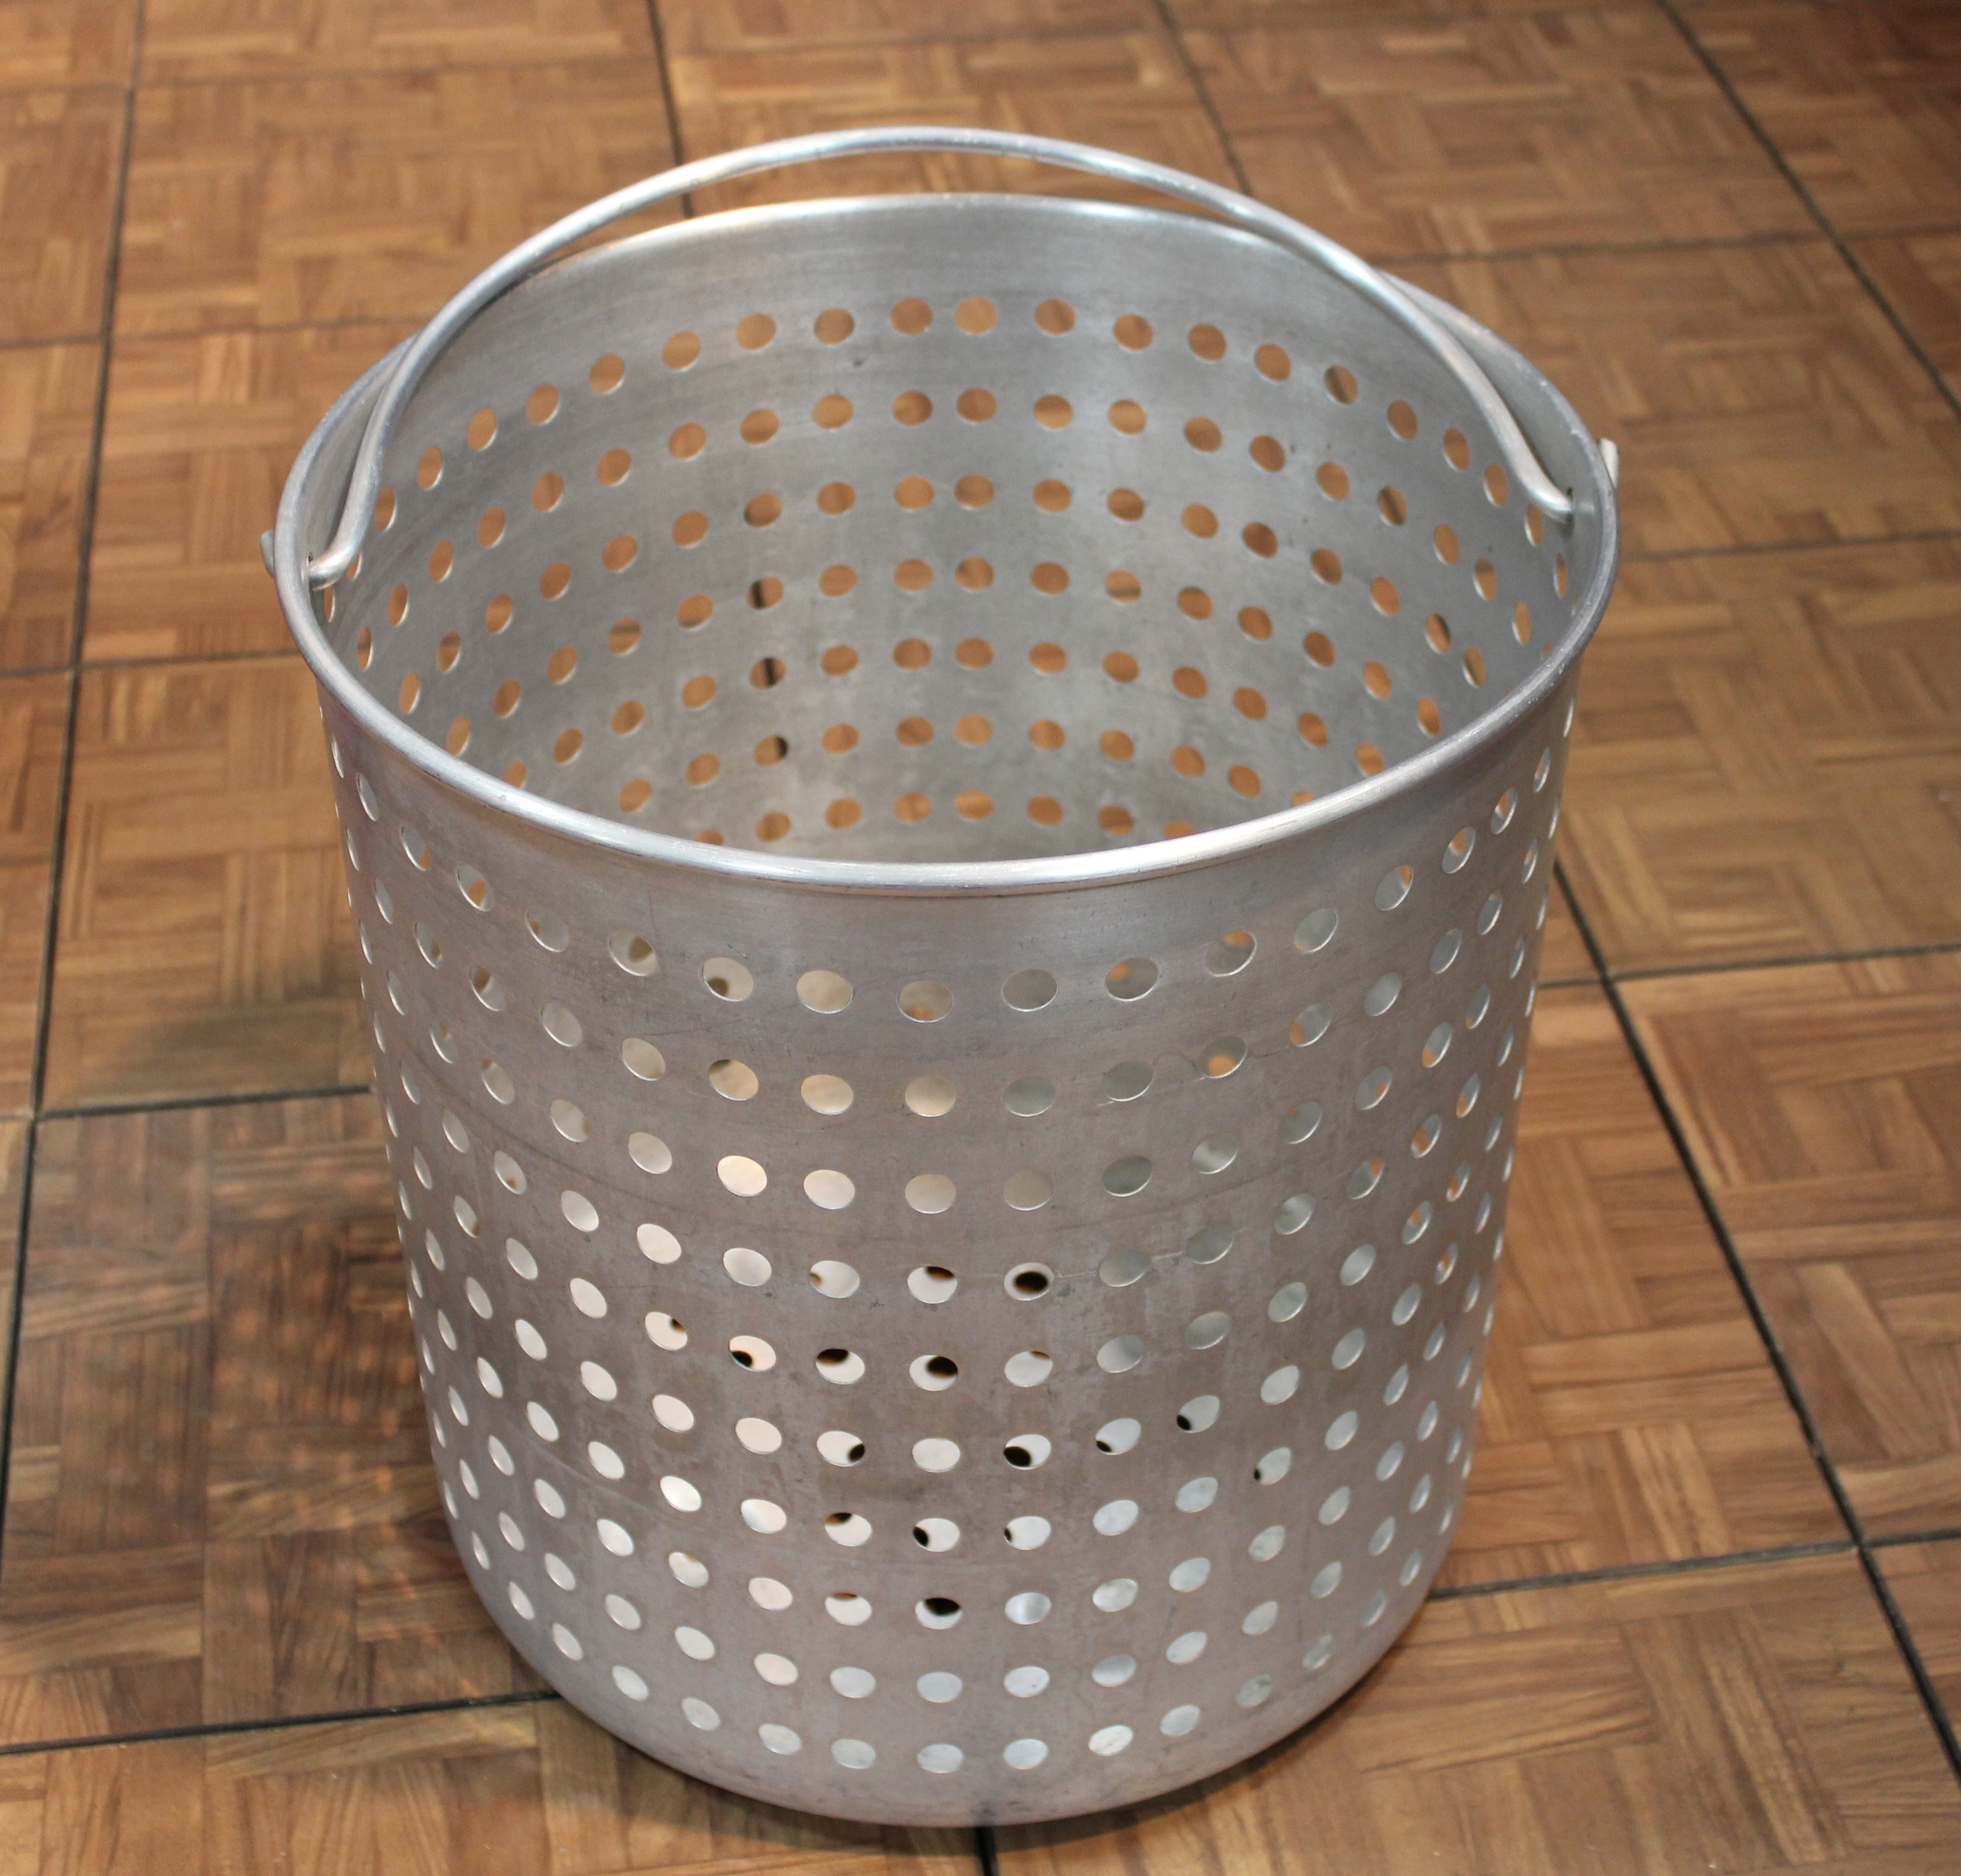 Cooking Pot Strainer $  30.00